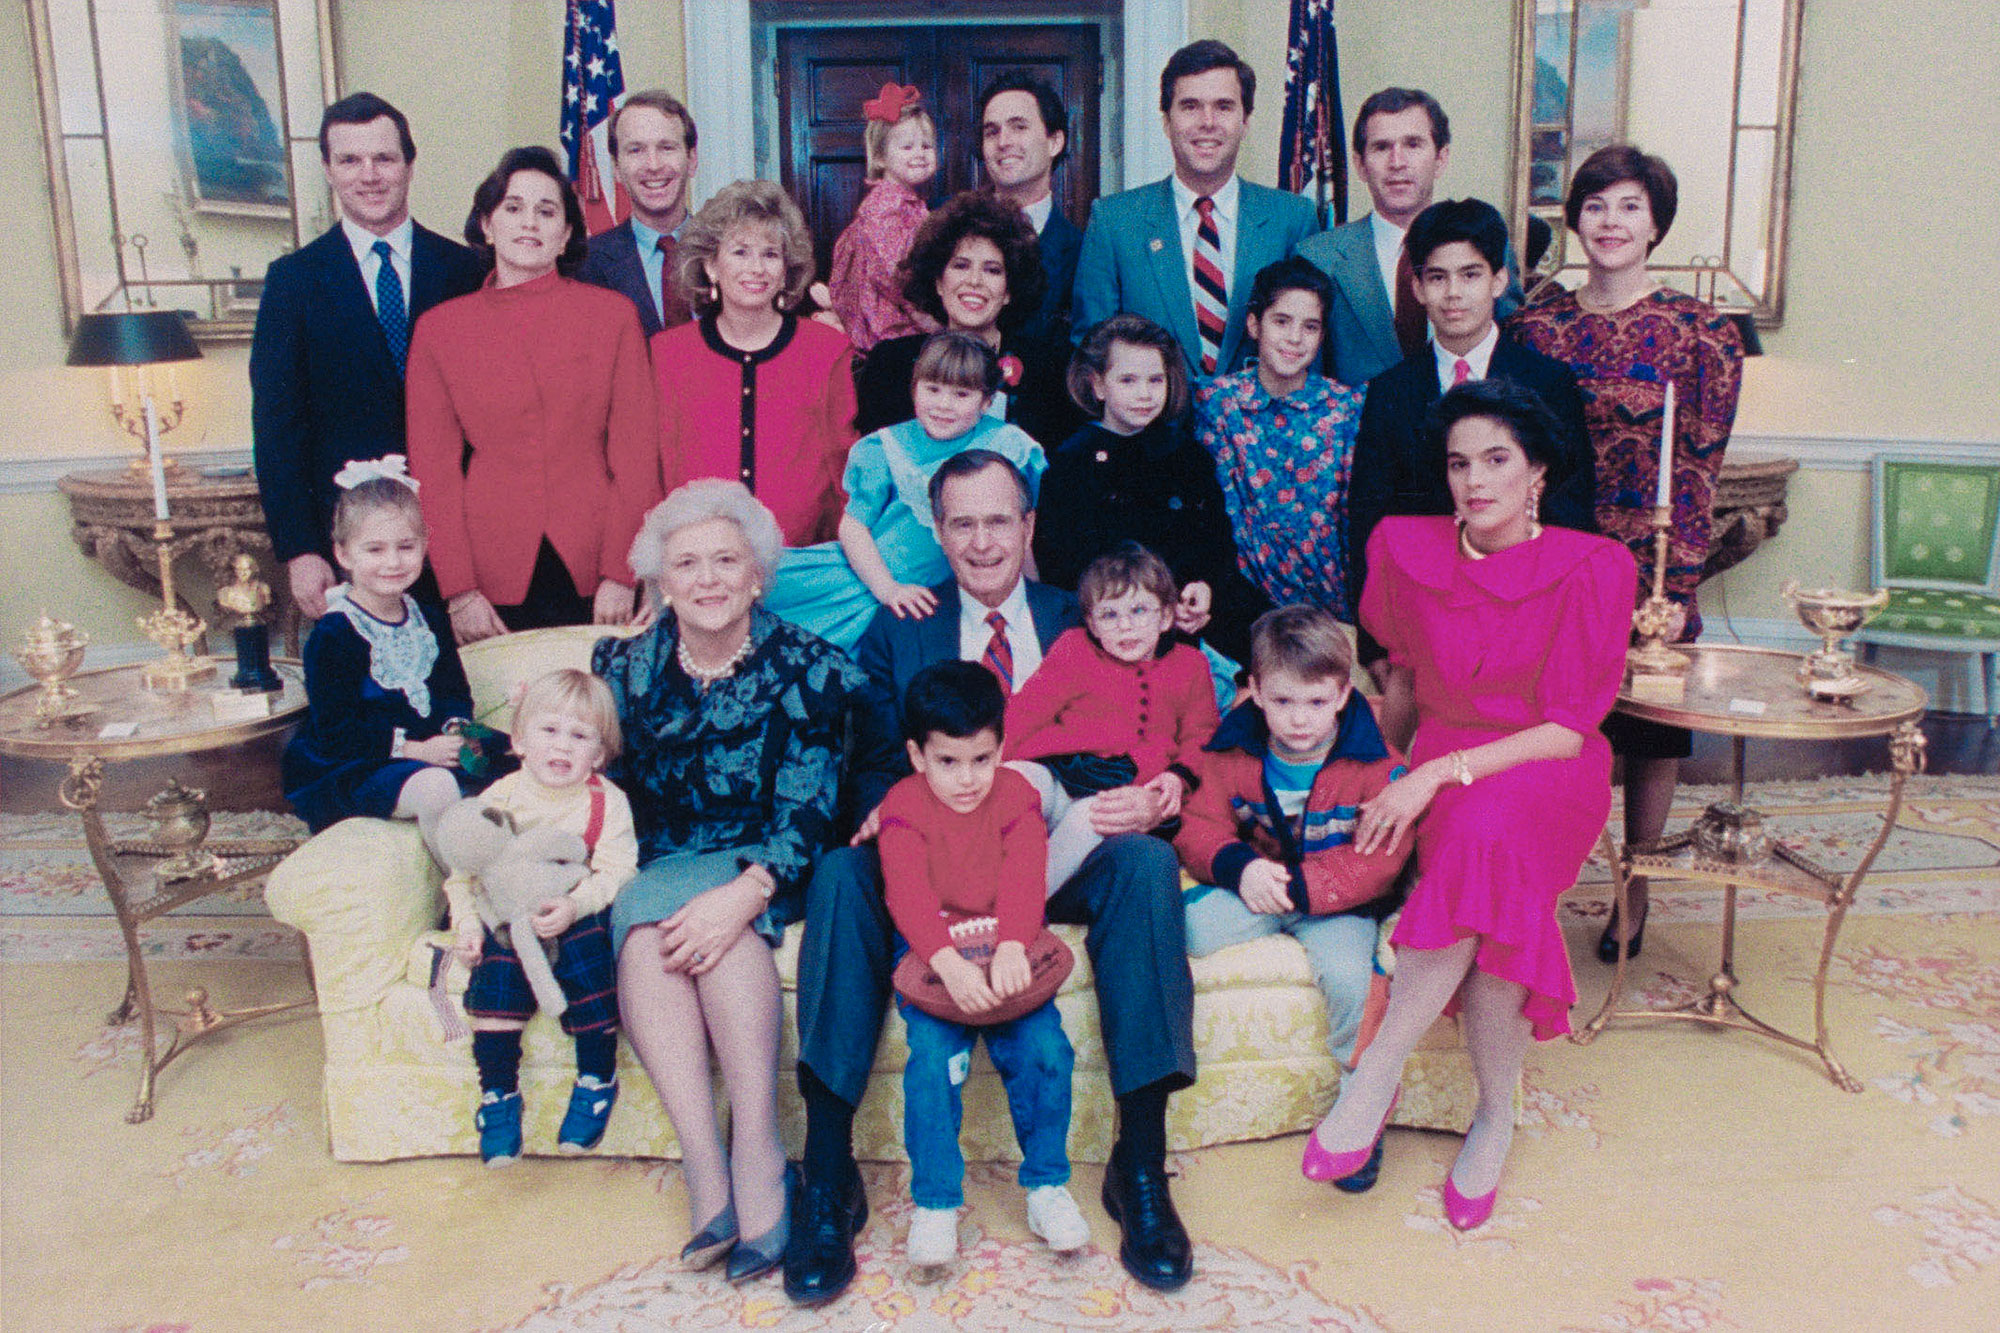 President Bush's Family Portrait